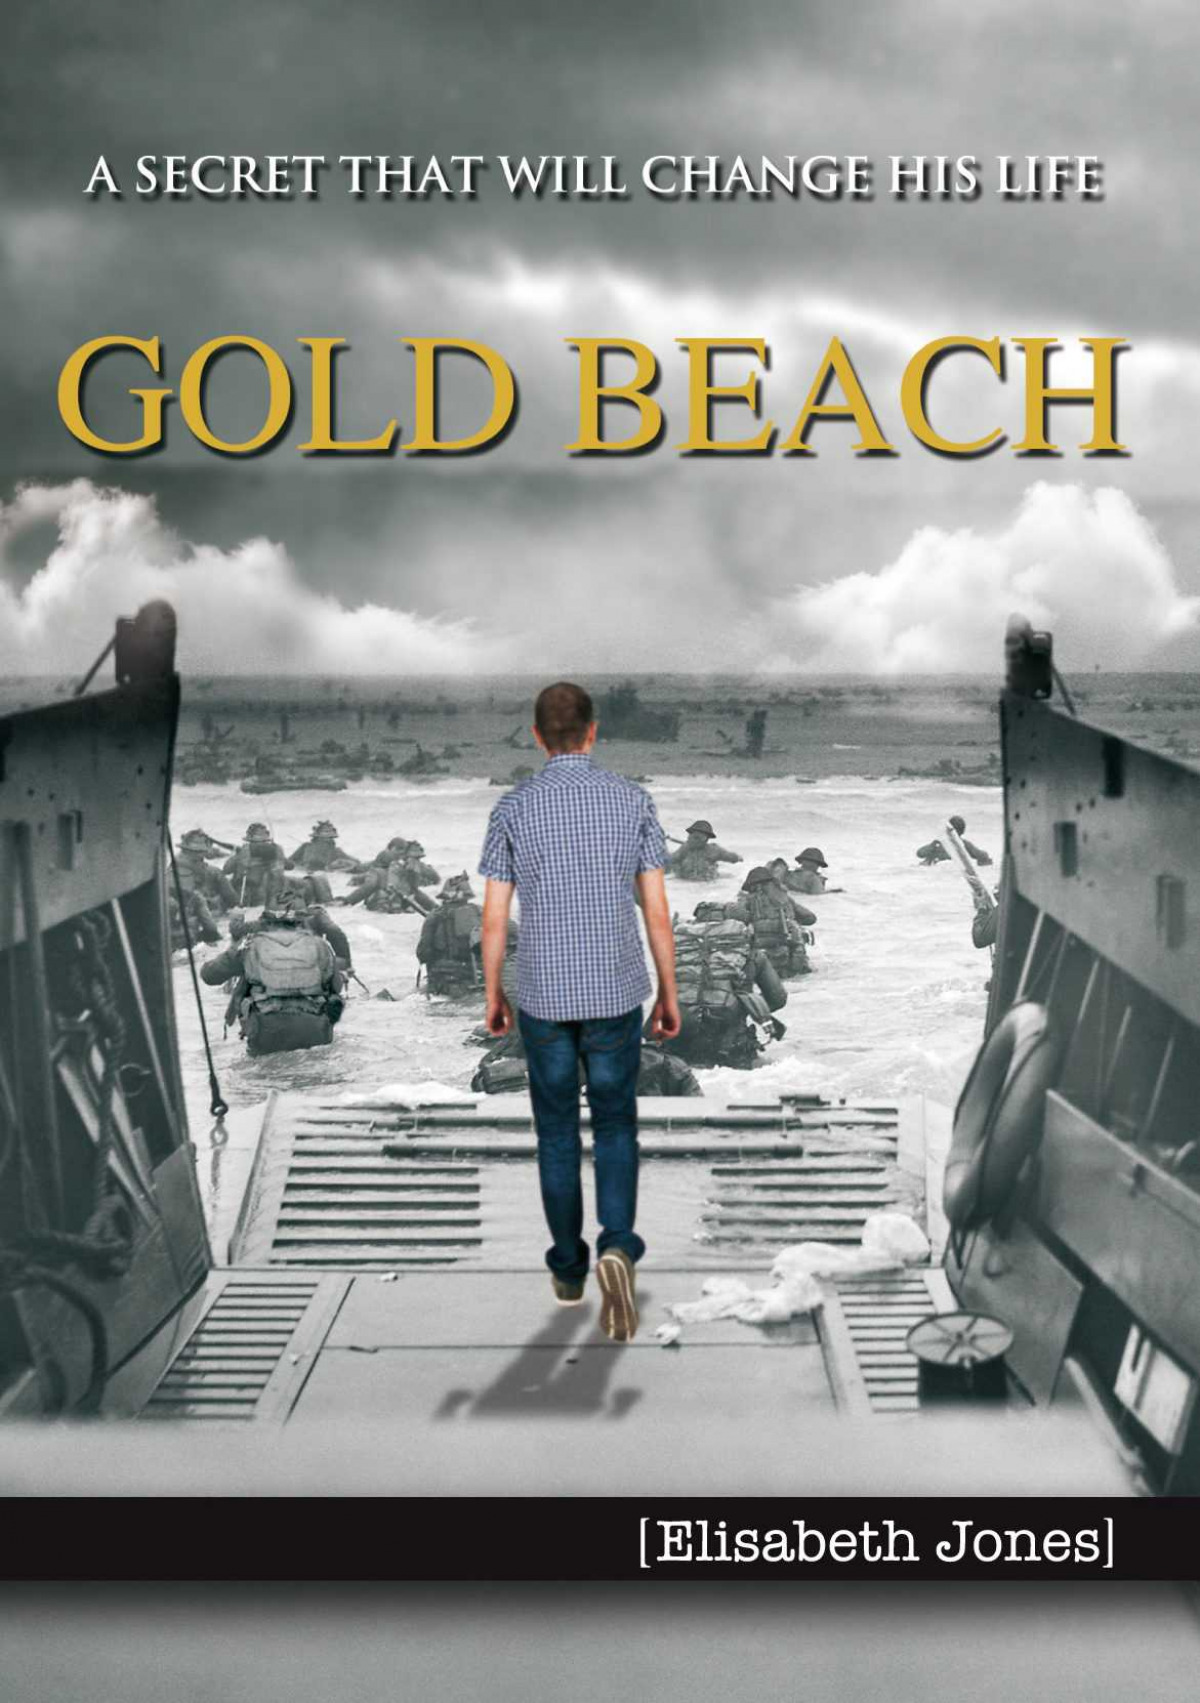 Gold Beach. A secret that will change his life